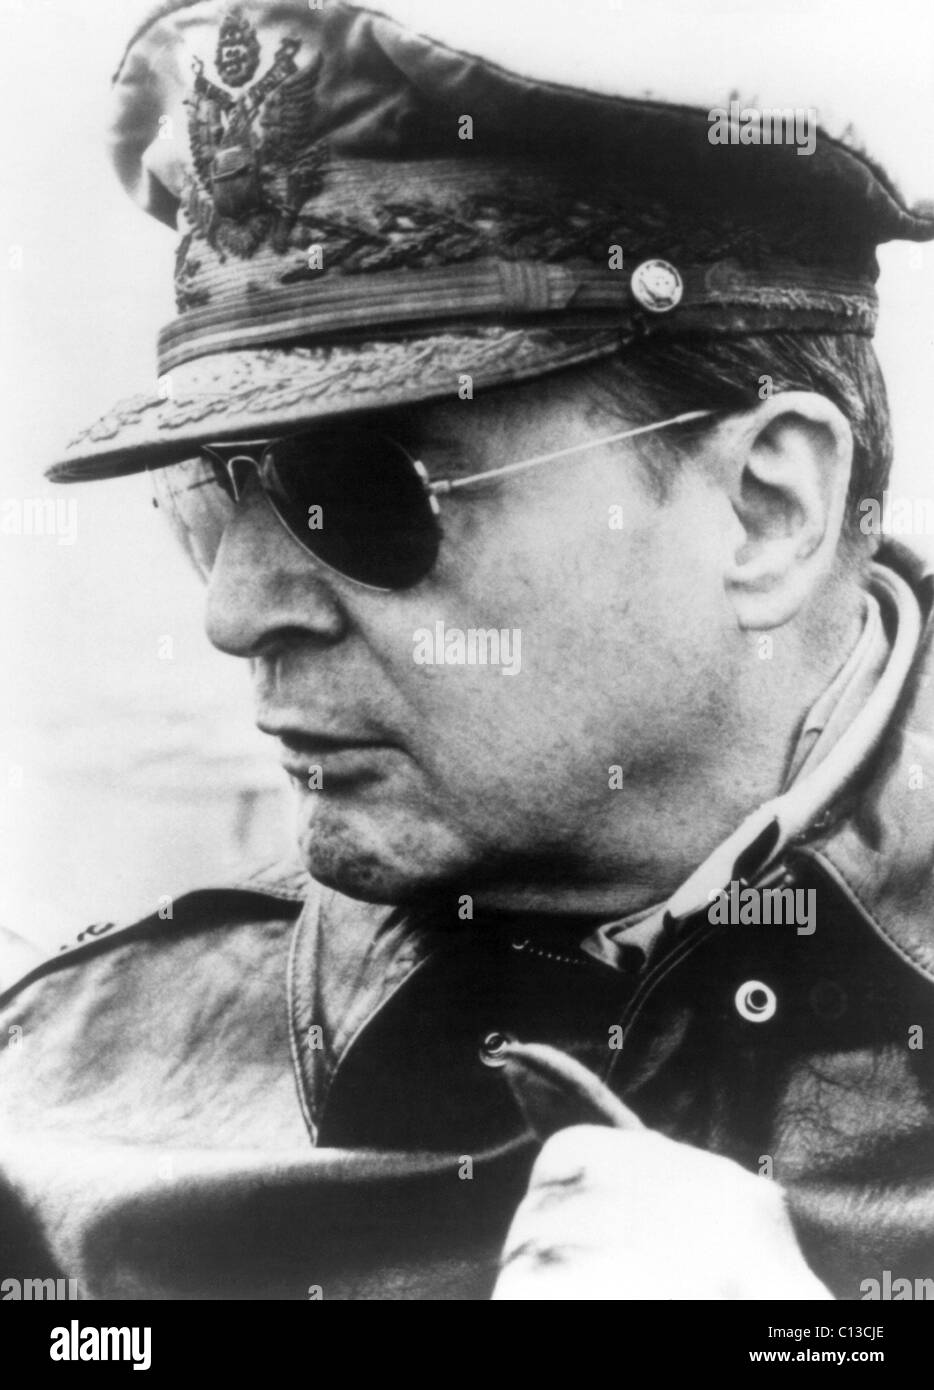 AMERICAN CAESAR, Douglas MacArthur in the 1940s, 1983. ©Cineworld/courtesy Everett Collection - Stock Image